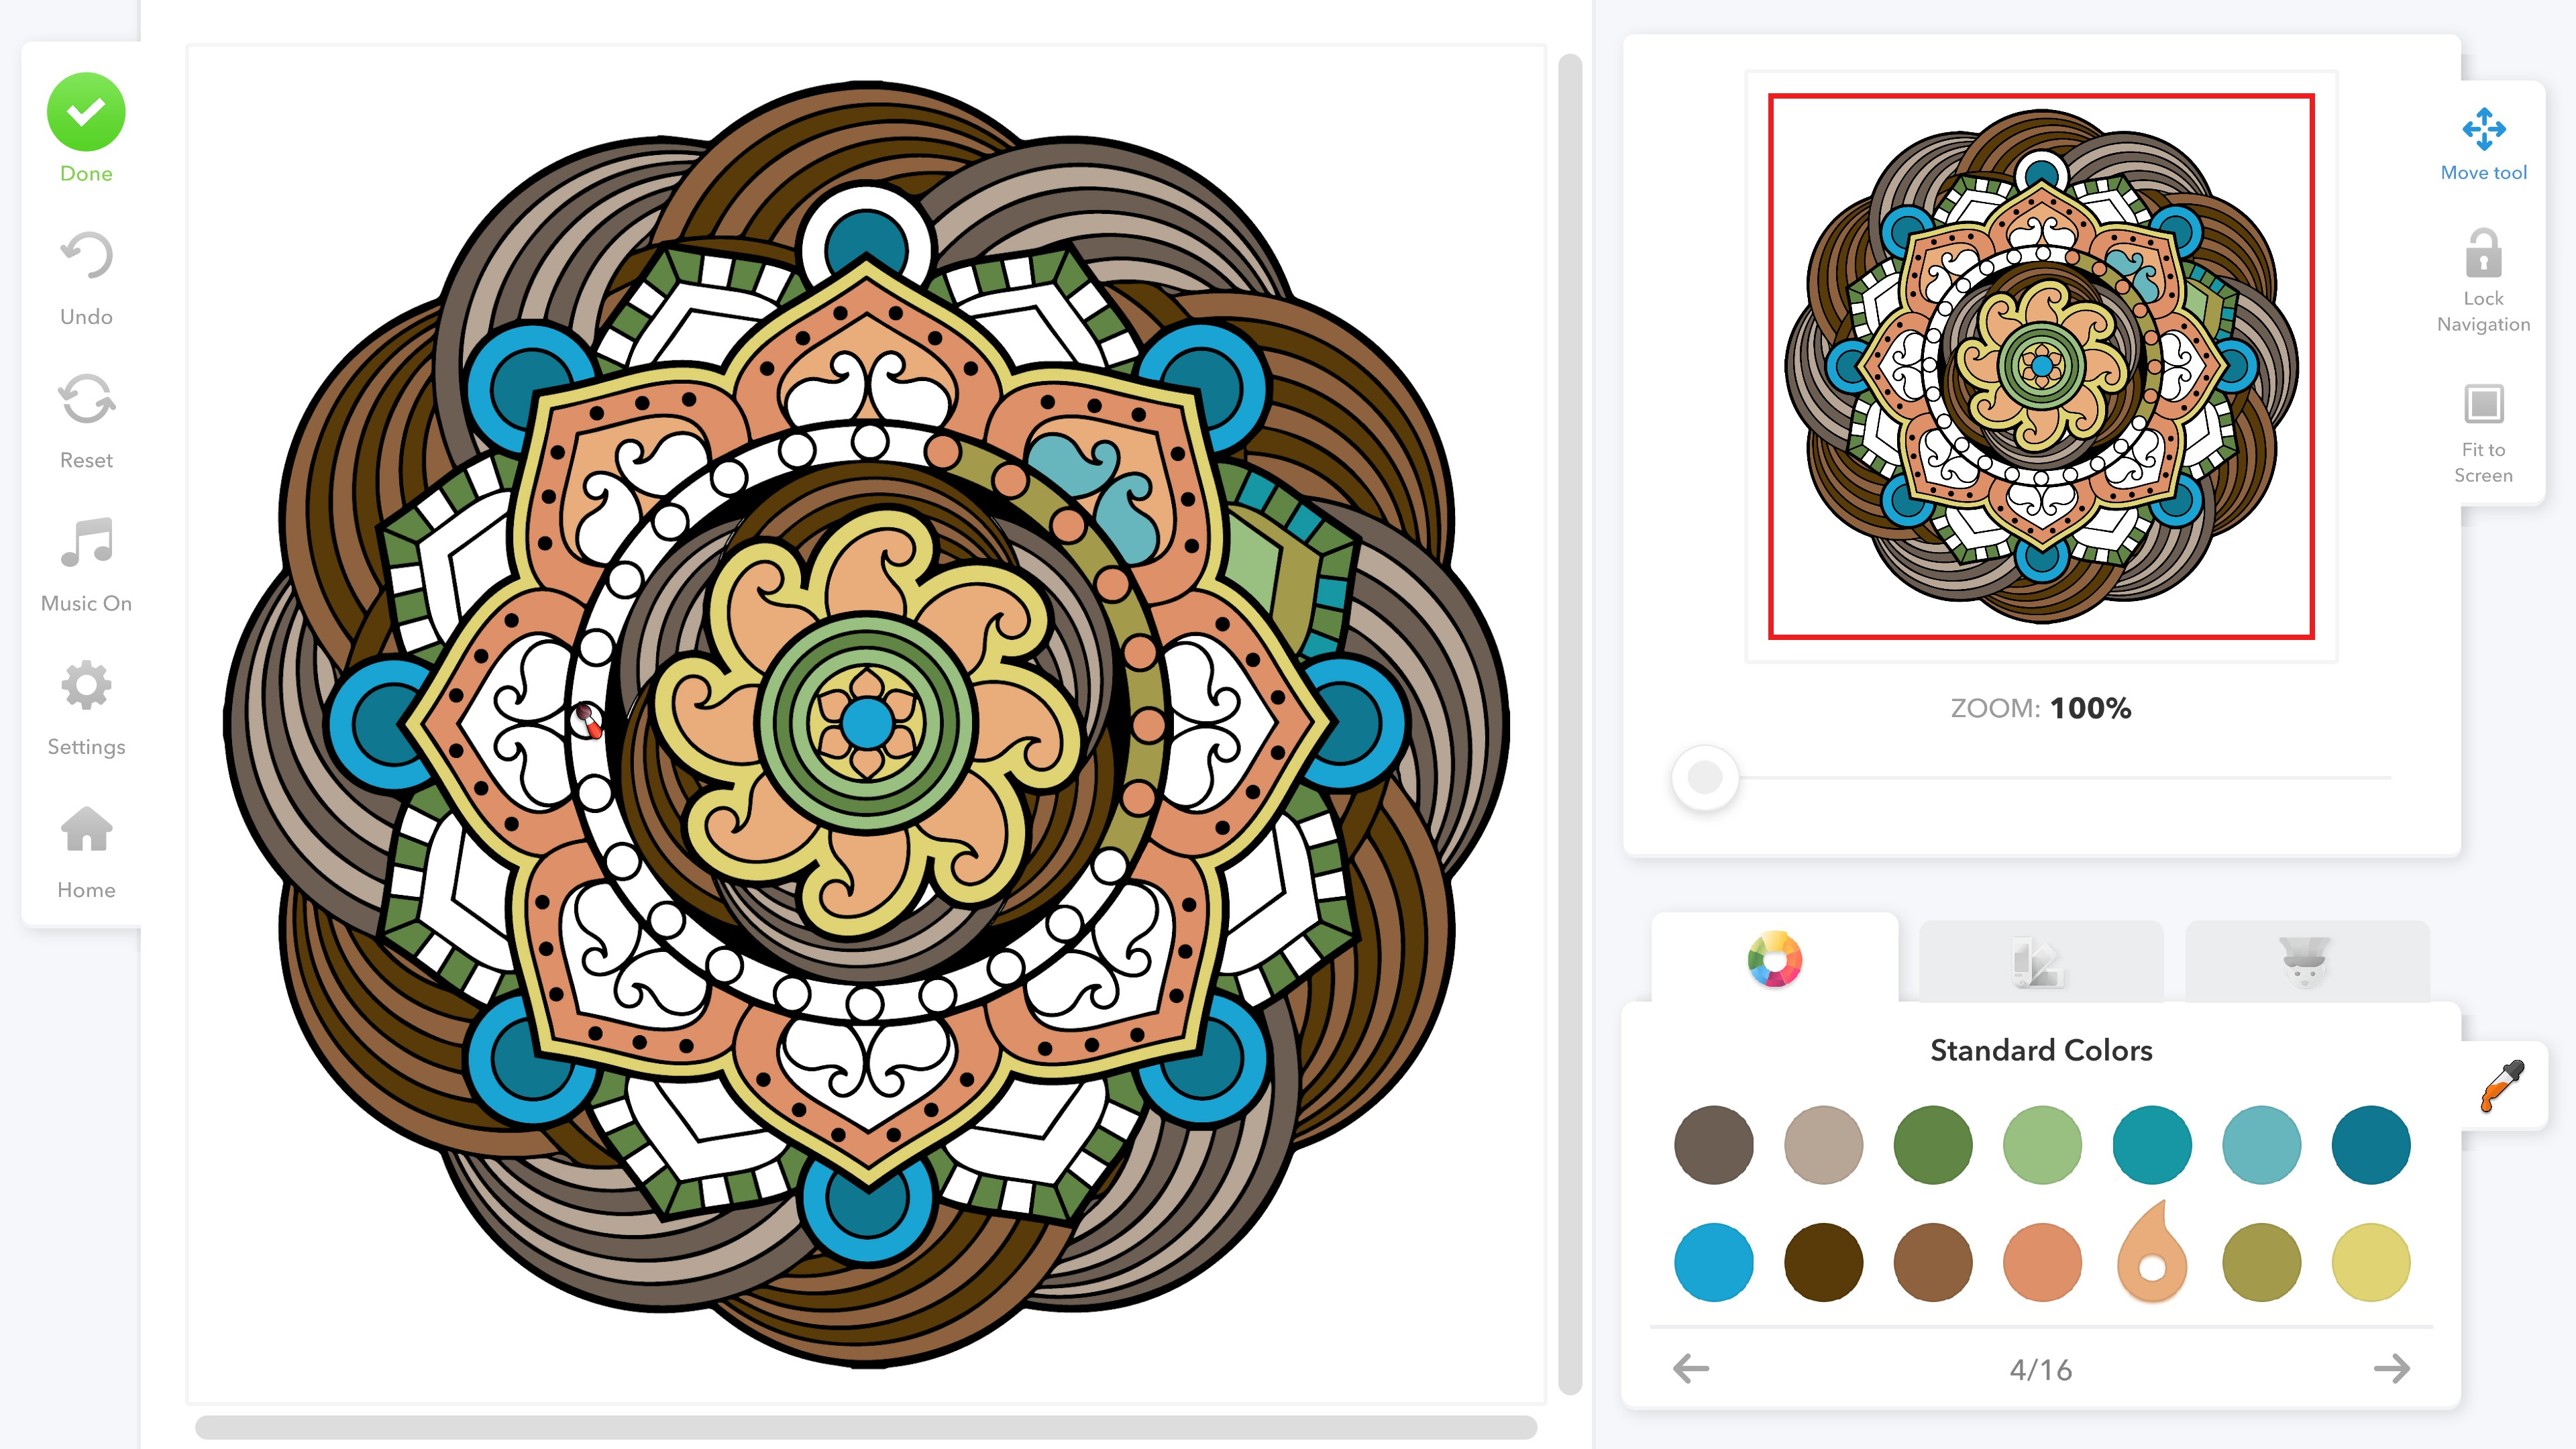 Coloring Book for Adults. A partially colored mandala featuring browns, greens, and blues